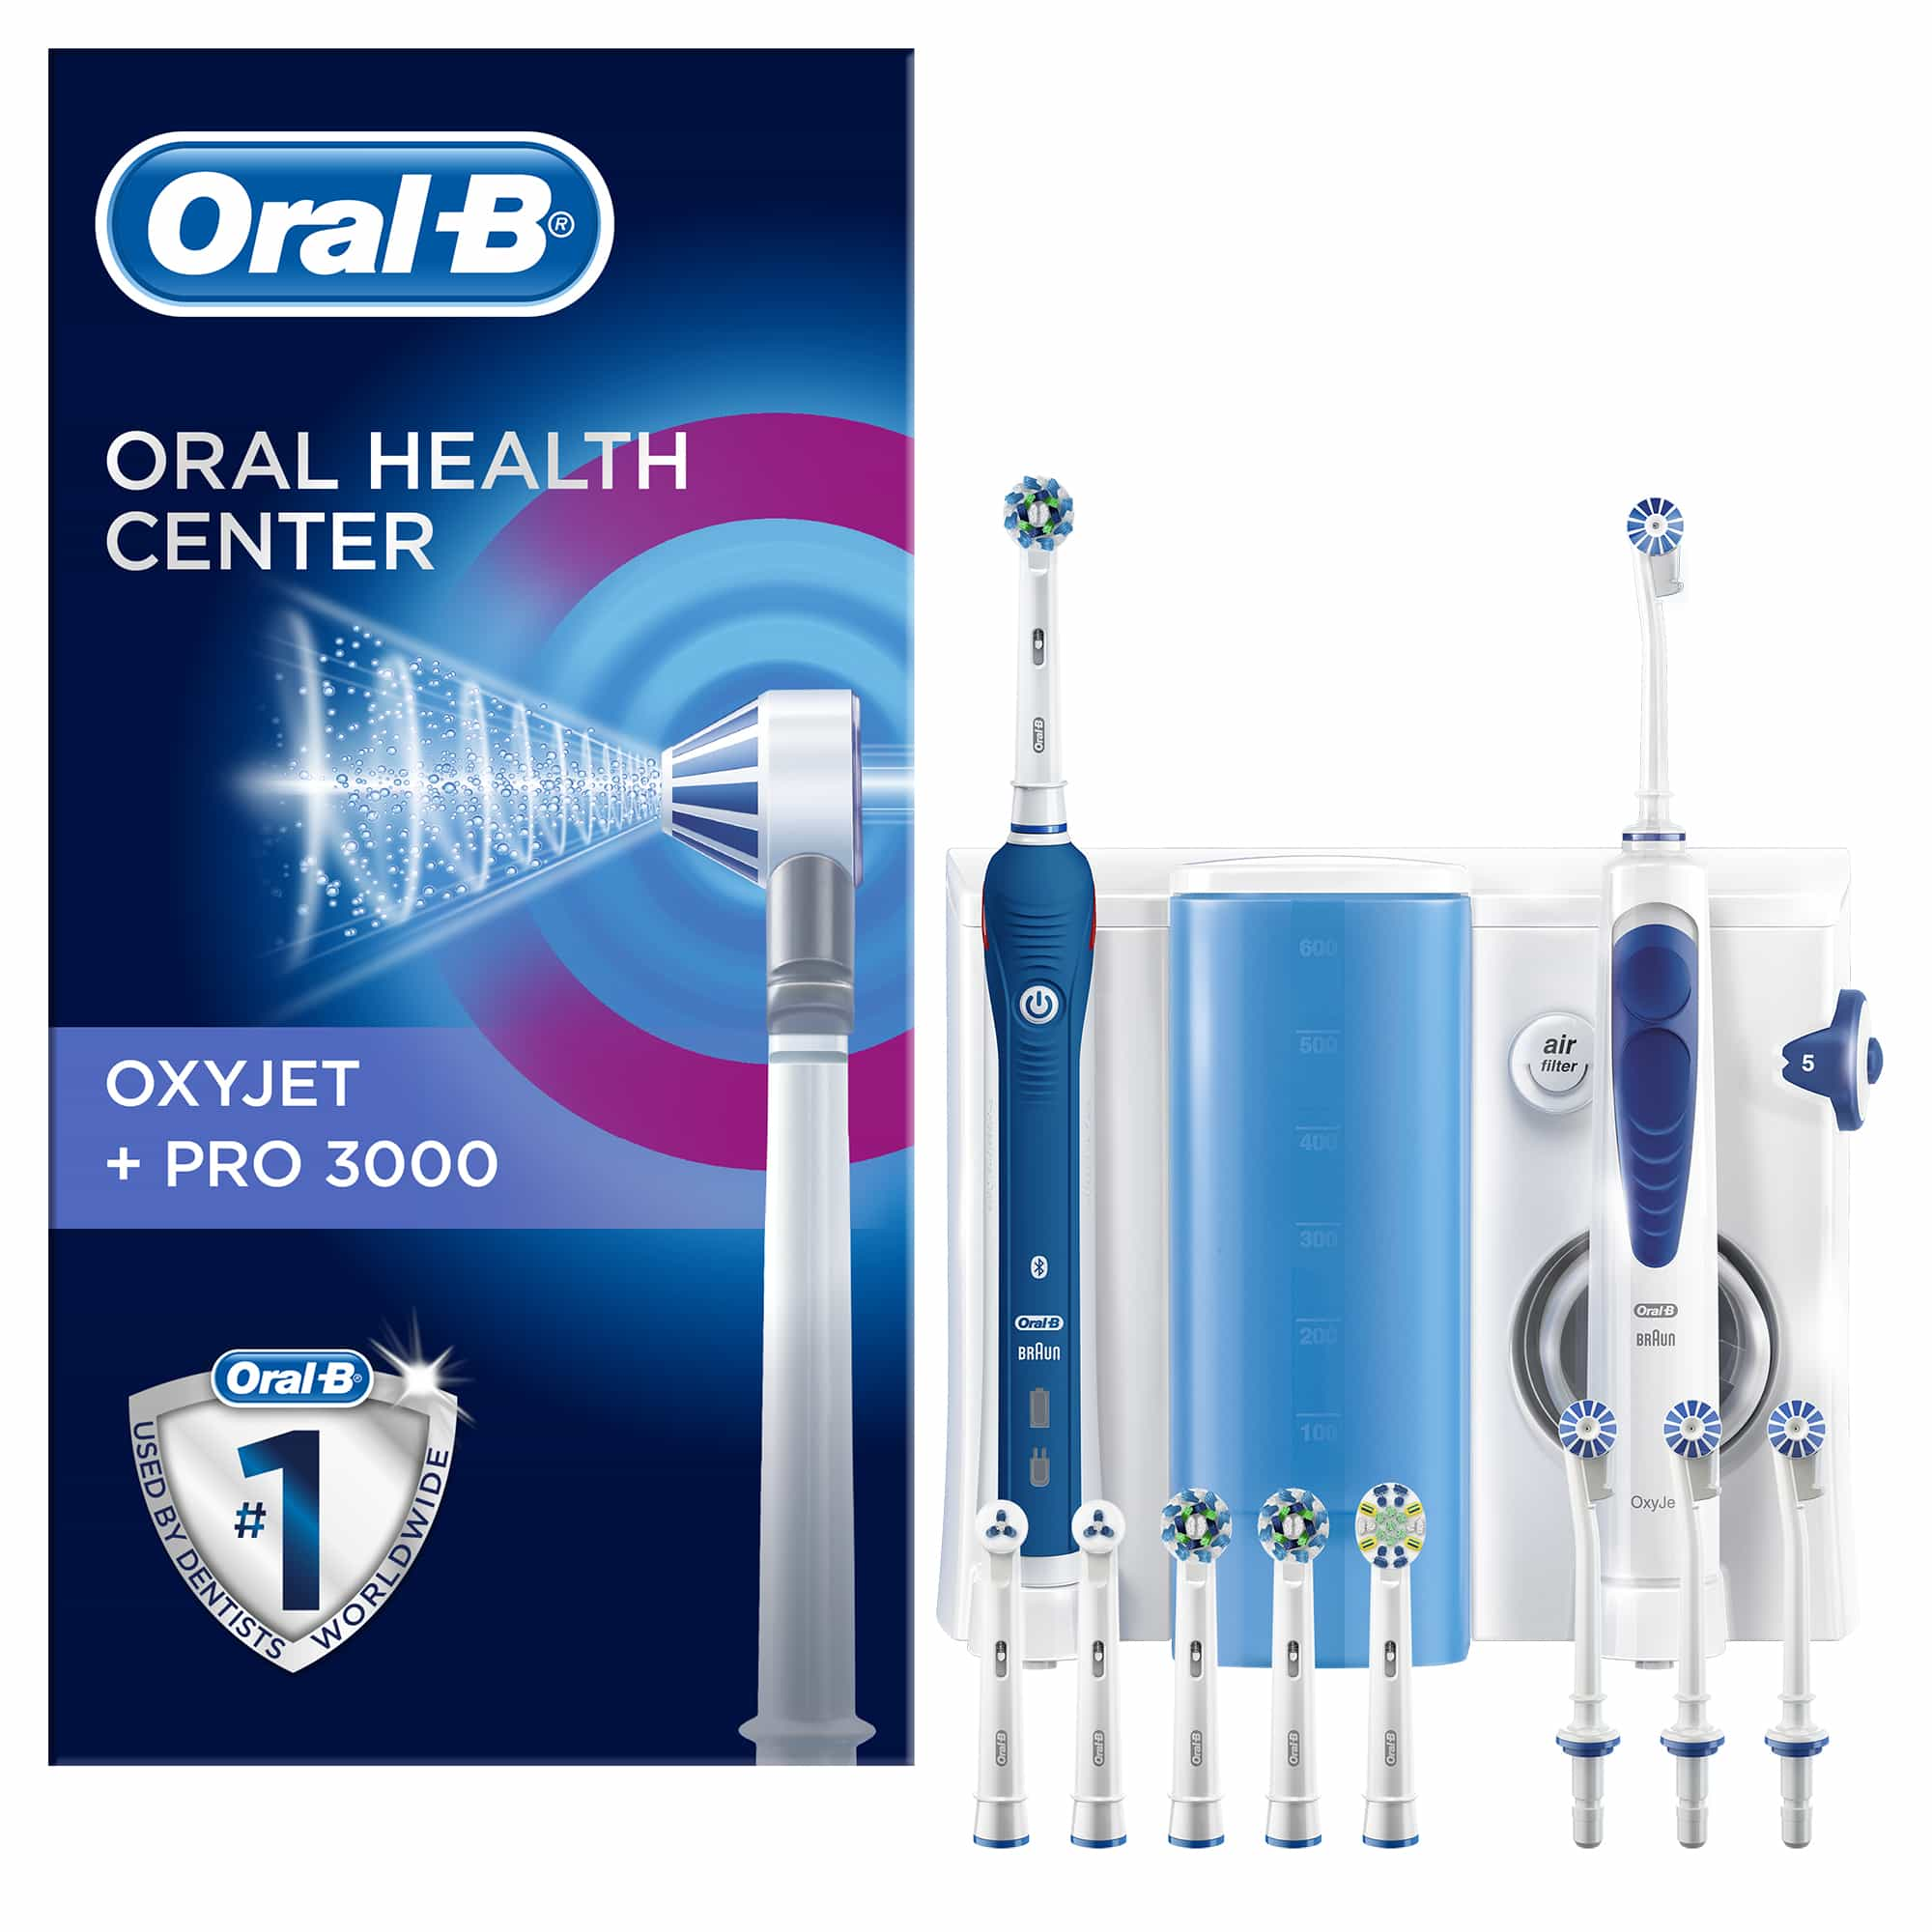 Oral-B Professional Care Health Center für 189,99 Euro